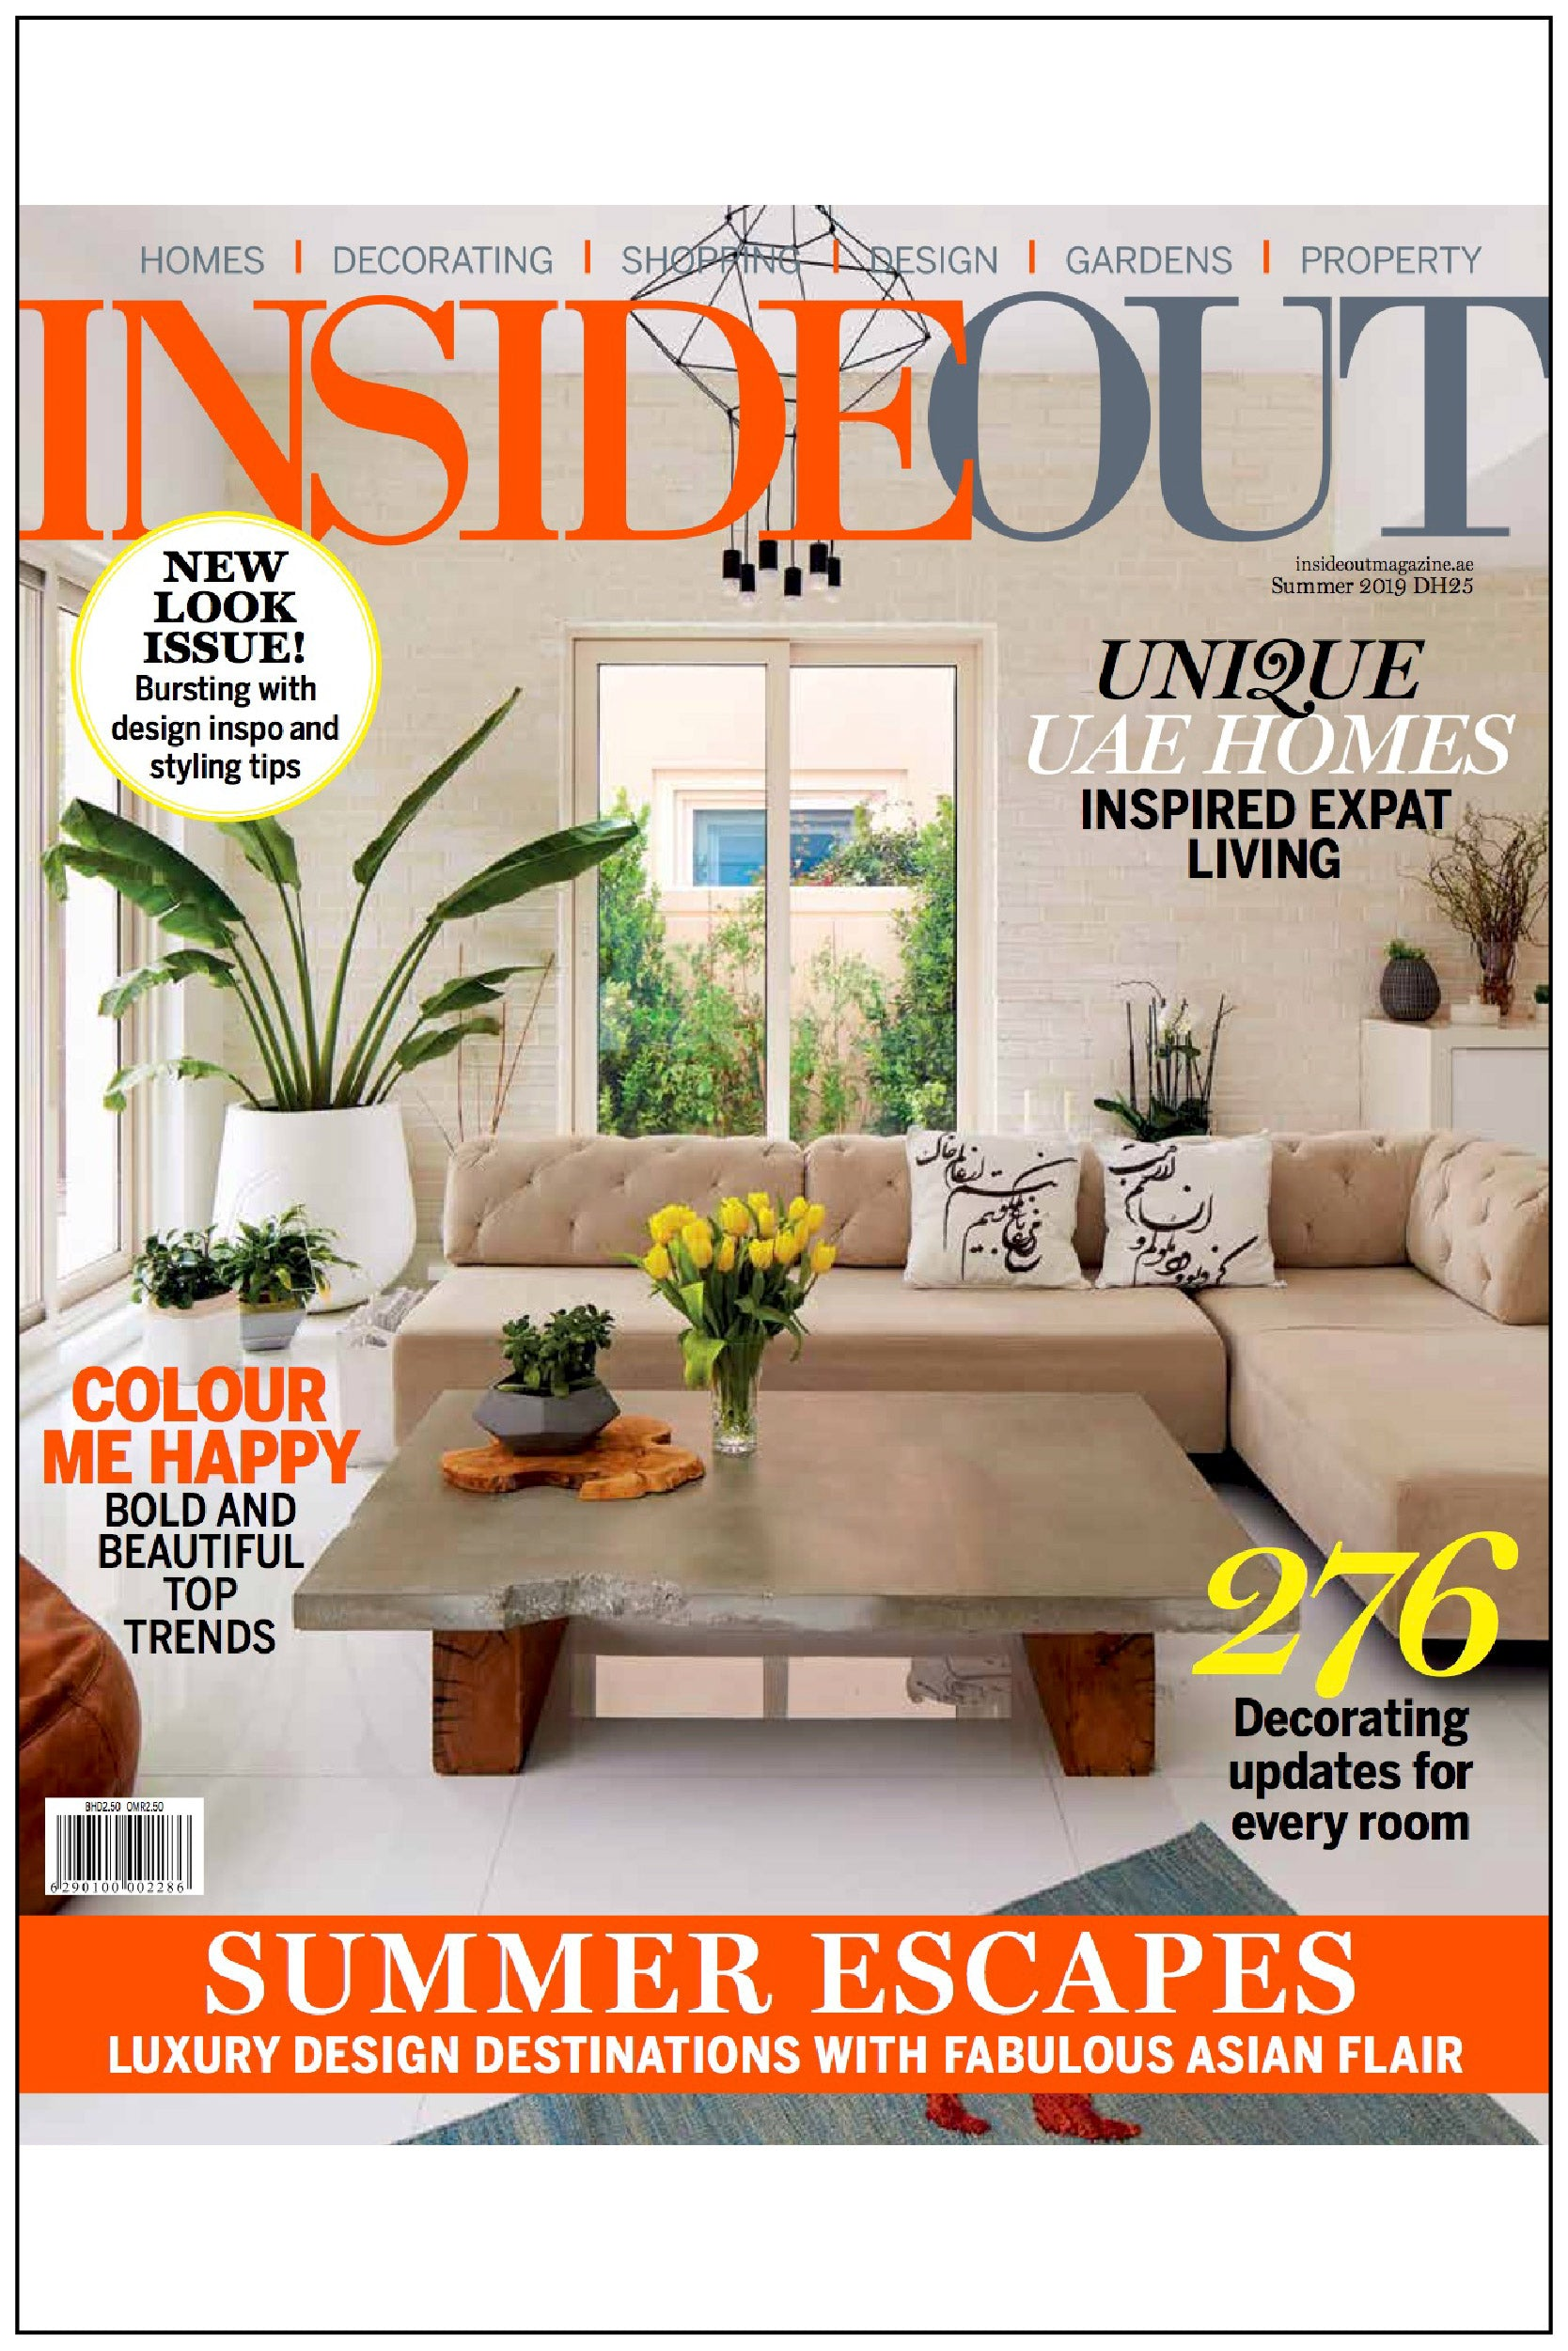 Insideout fronteriors magazine article